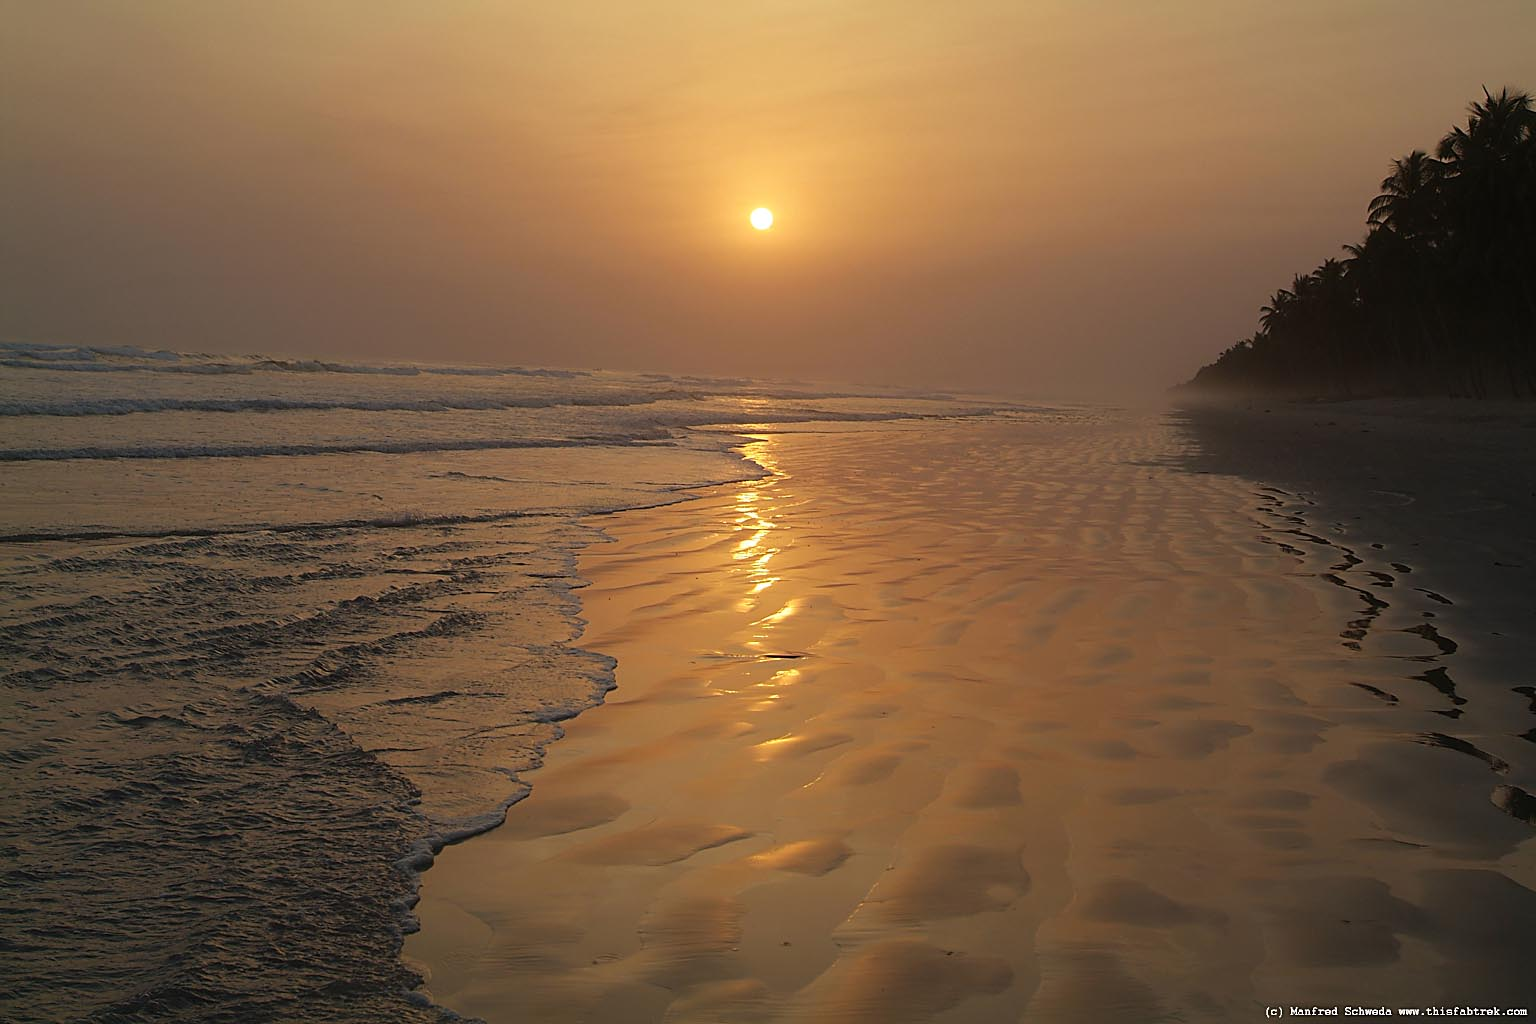 evening on a beach Things to do in daytona beach whether you're traveling with family, friends, a loved one or going solo, you'll find plenty of things to do in daytona beach.